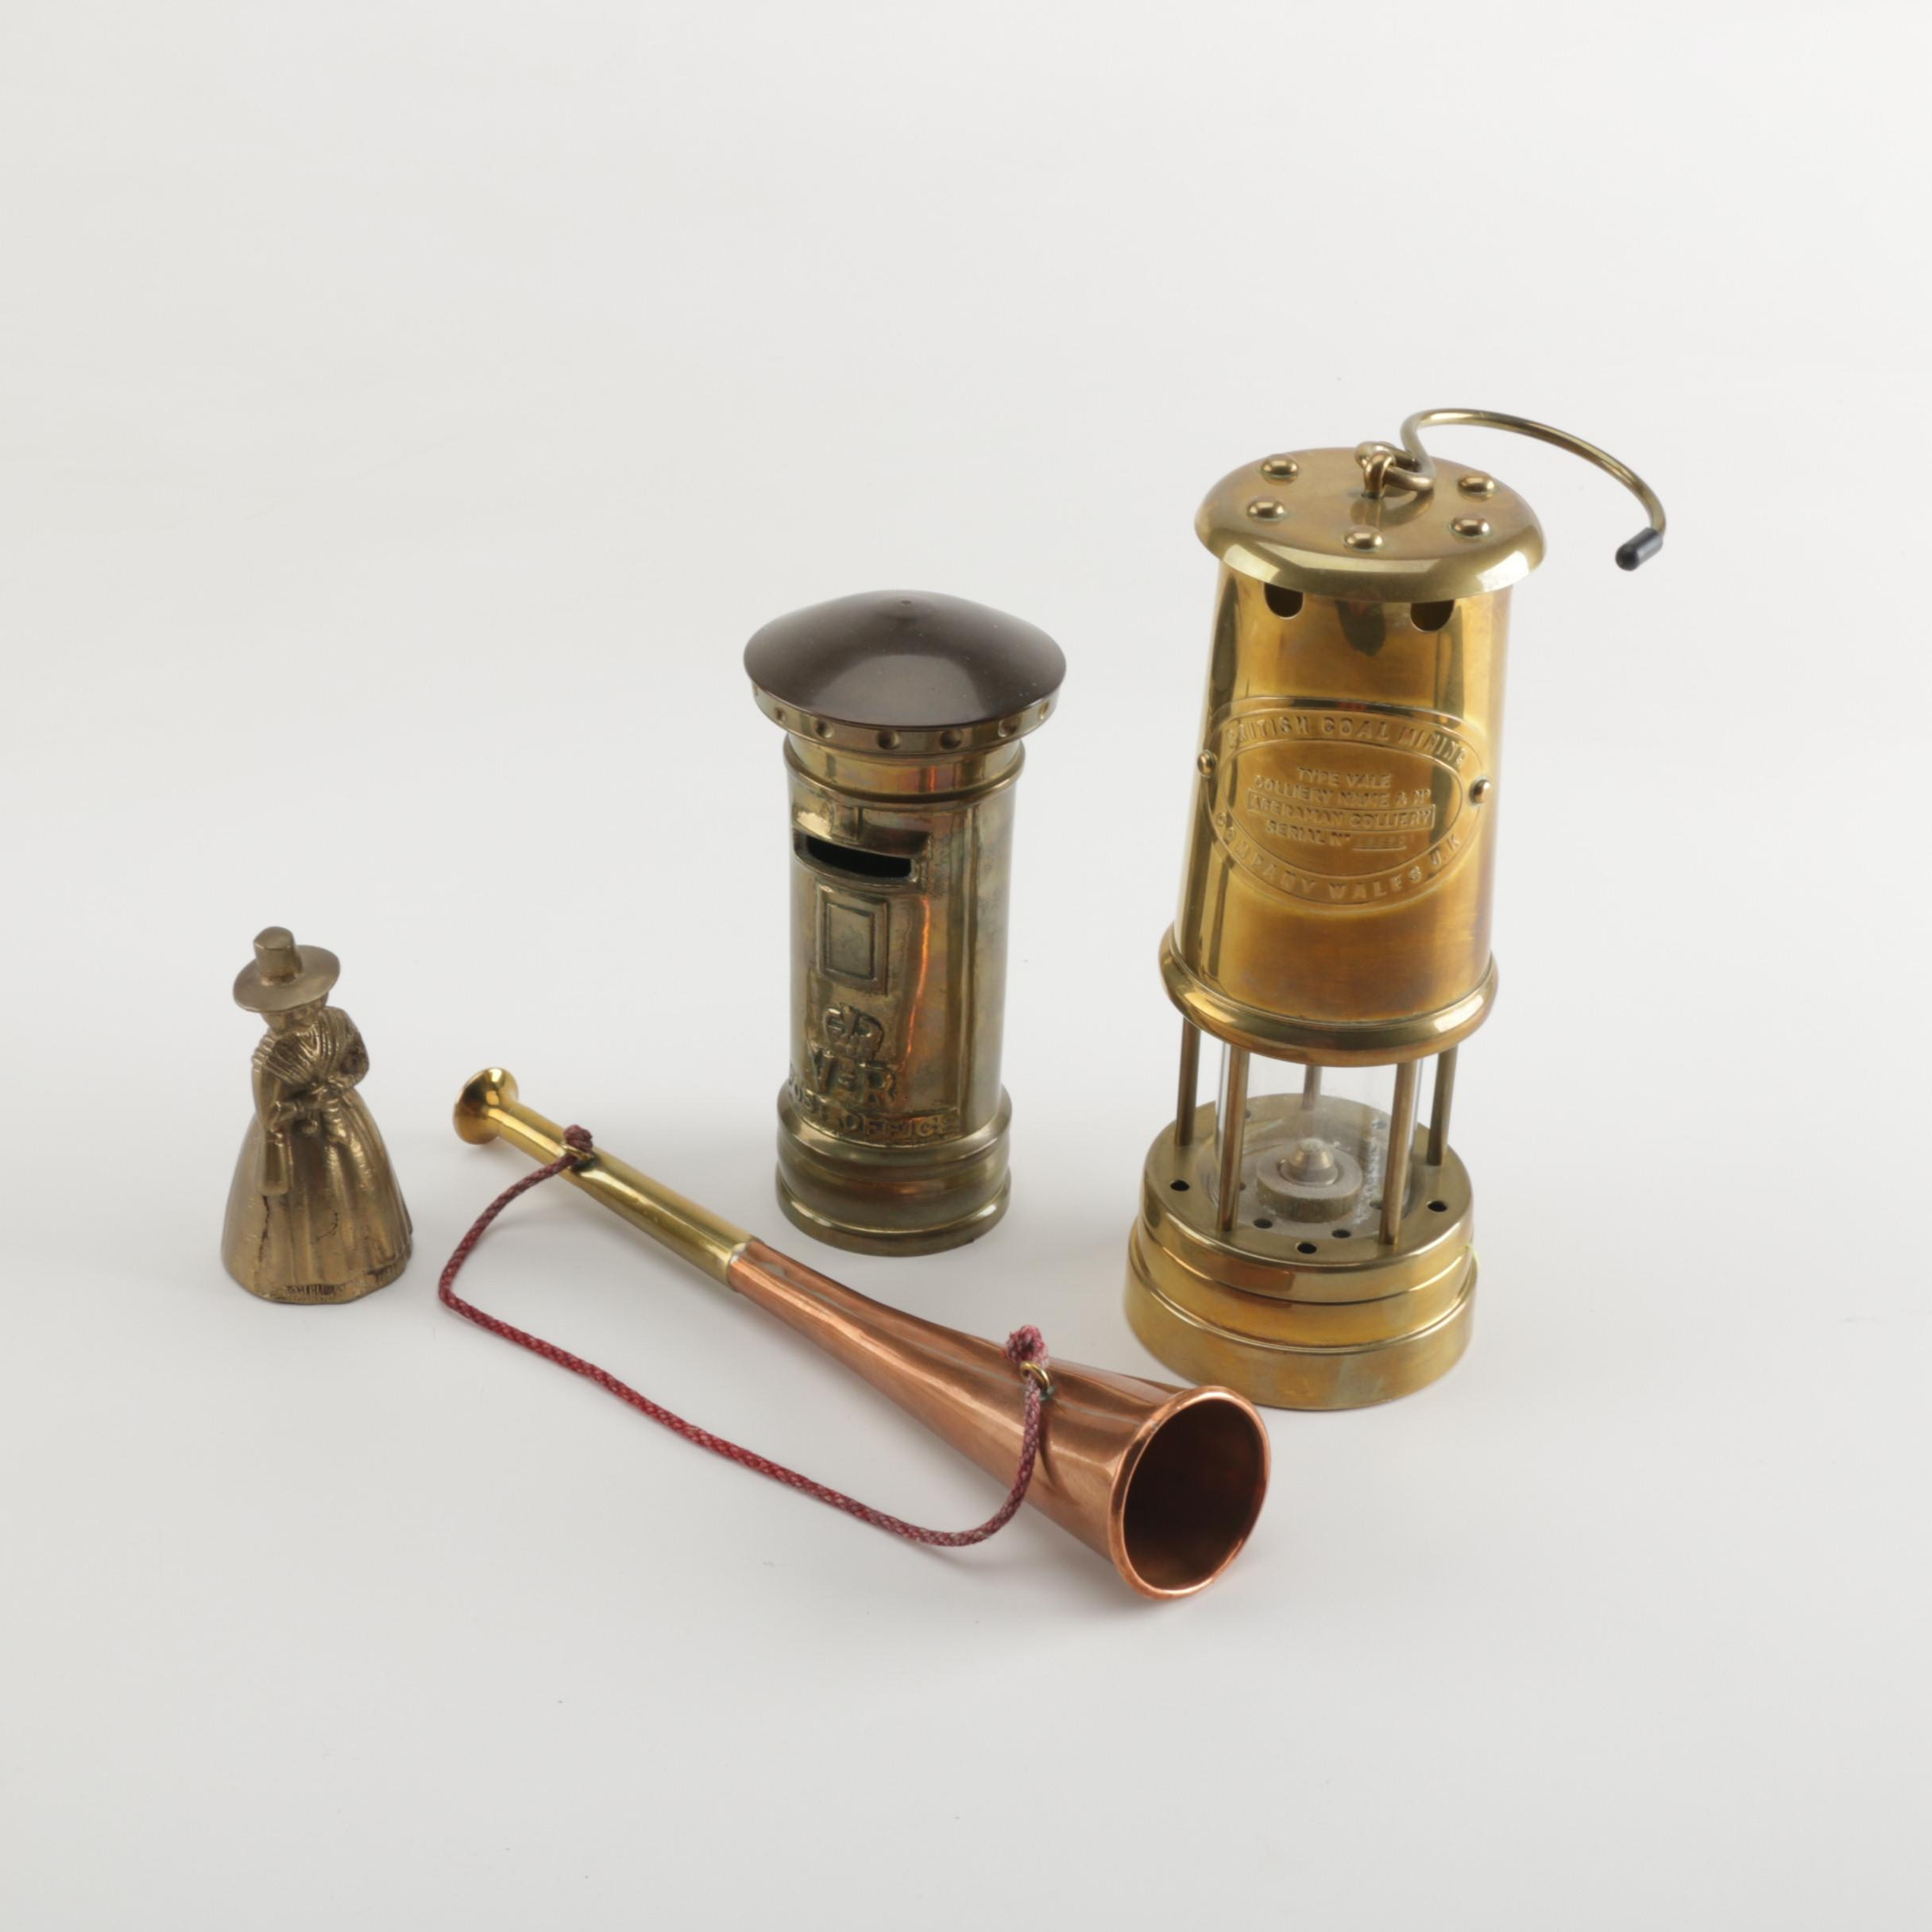 English Hunting Horn and Other Copper and Brass Decorative Items